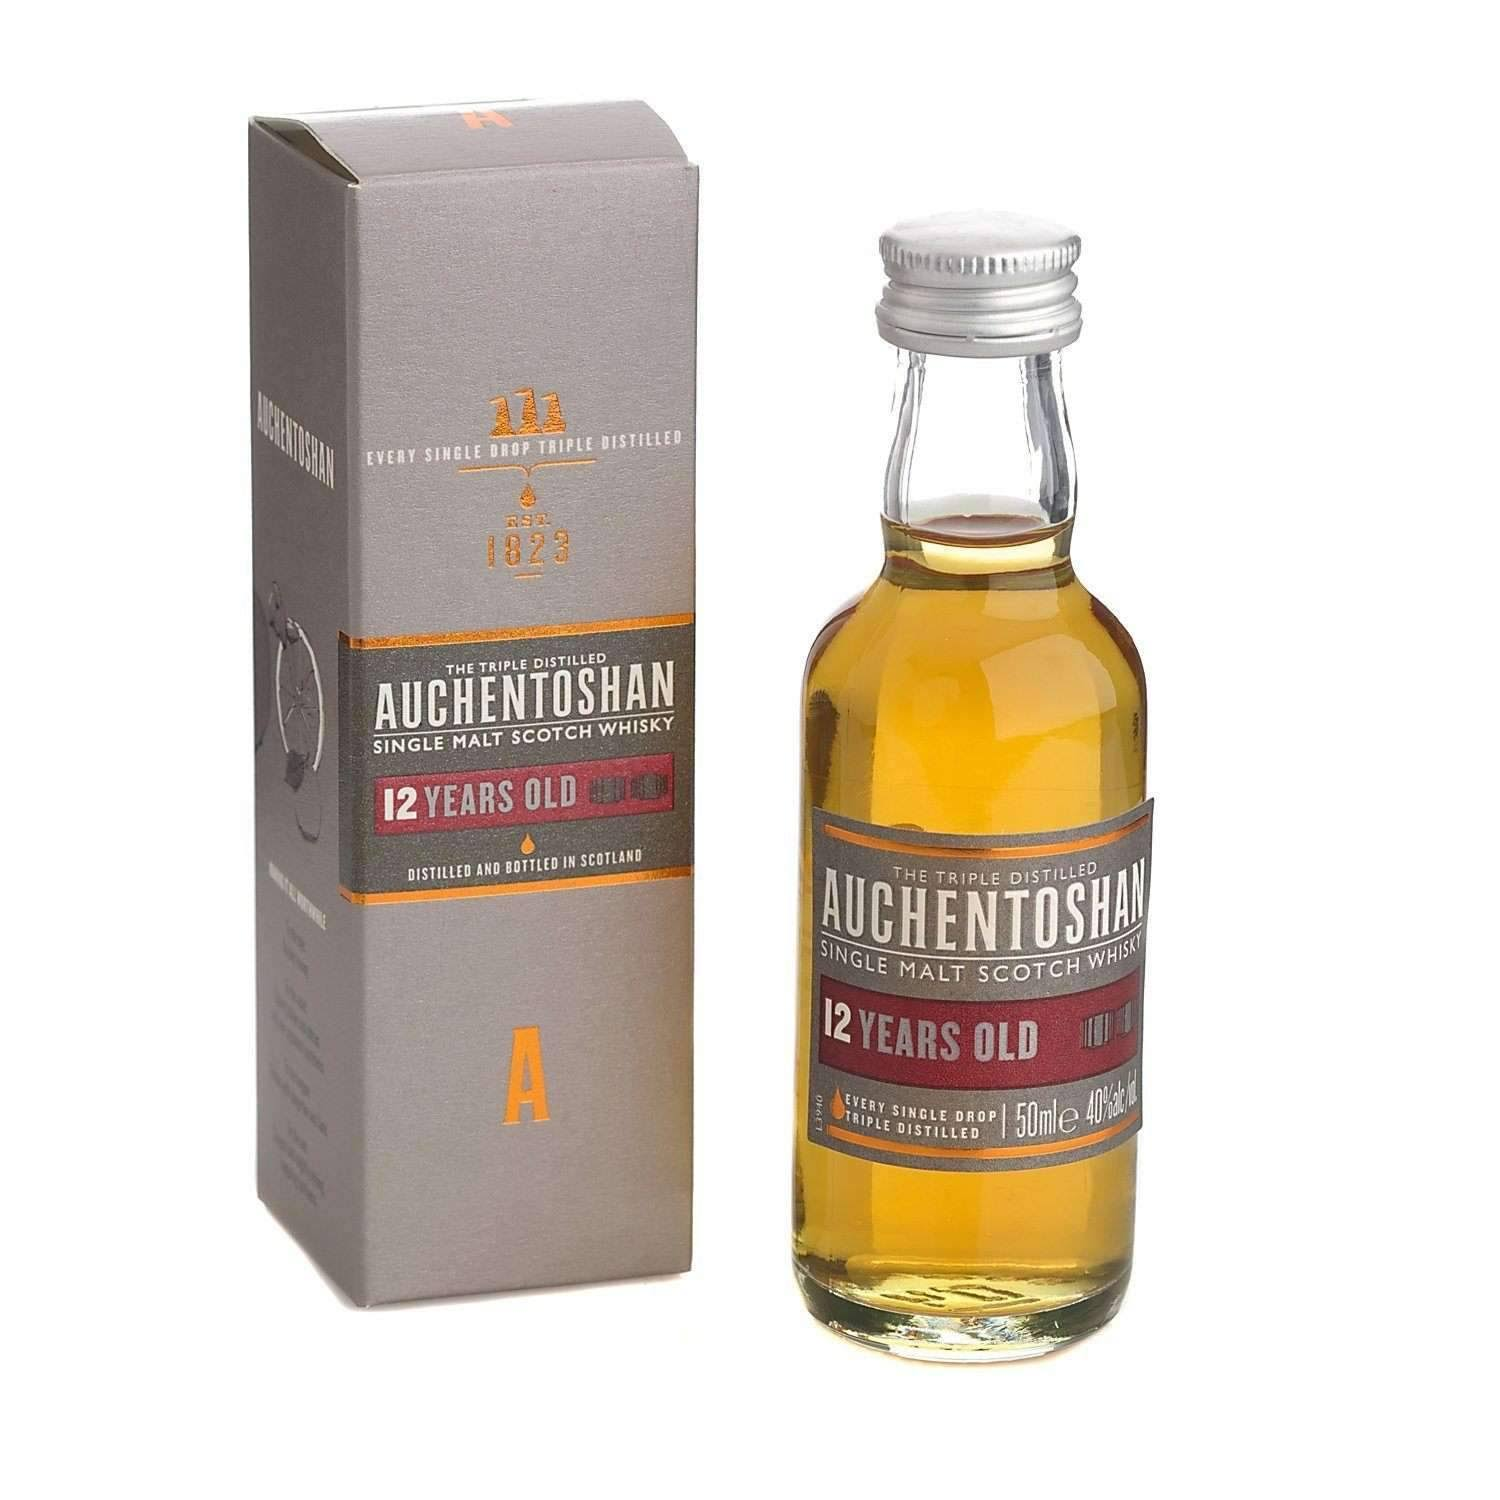 Auchentoshan 12 Years Old Single Malt Scotch Whisky - 500ml